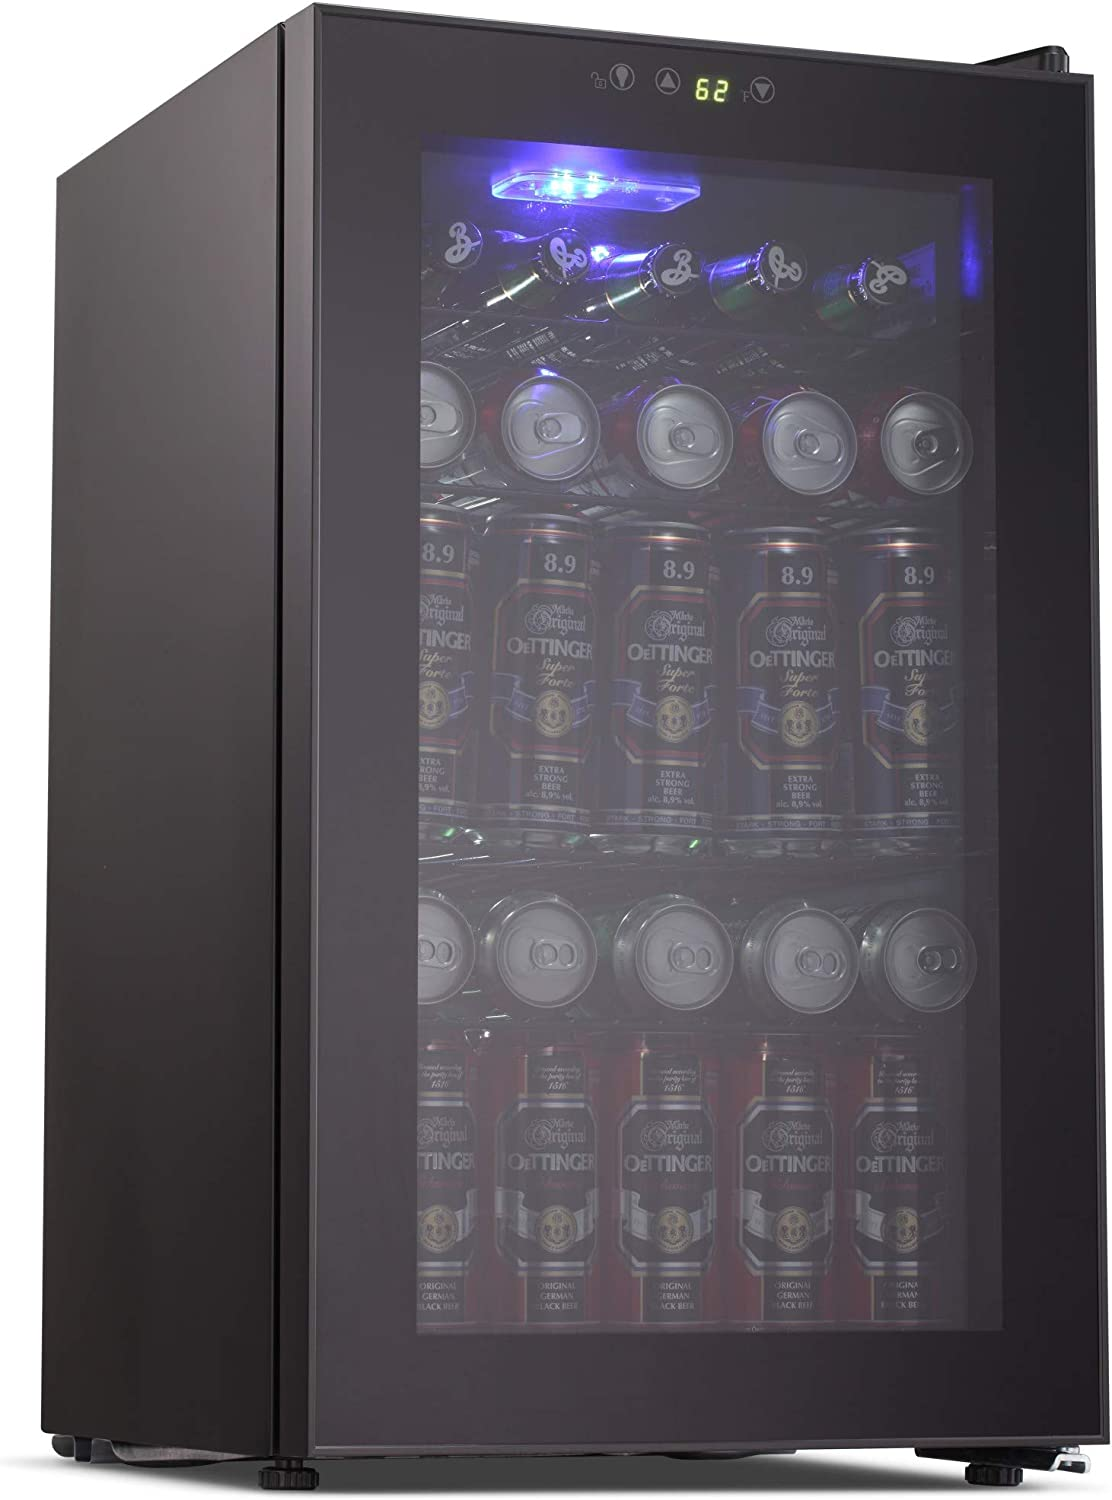 Joy Pebble Beverage Cooler and Refrigerator 85 Can Mini Fridge with Glass Door for Soda Beer or Wine Small Drink Cooler for Home Office or Bar